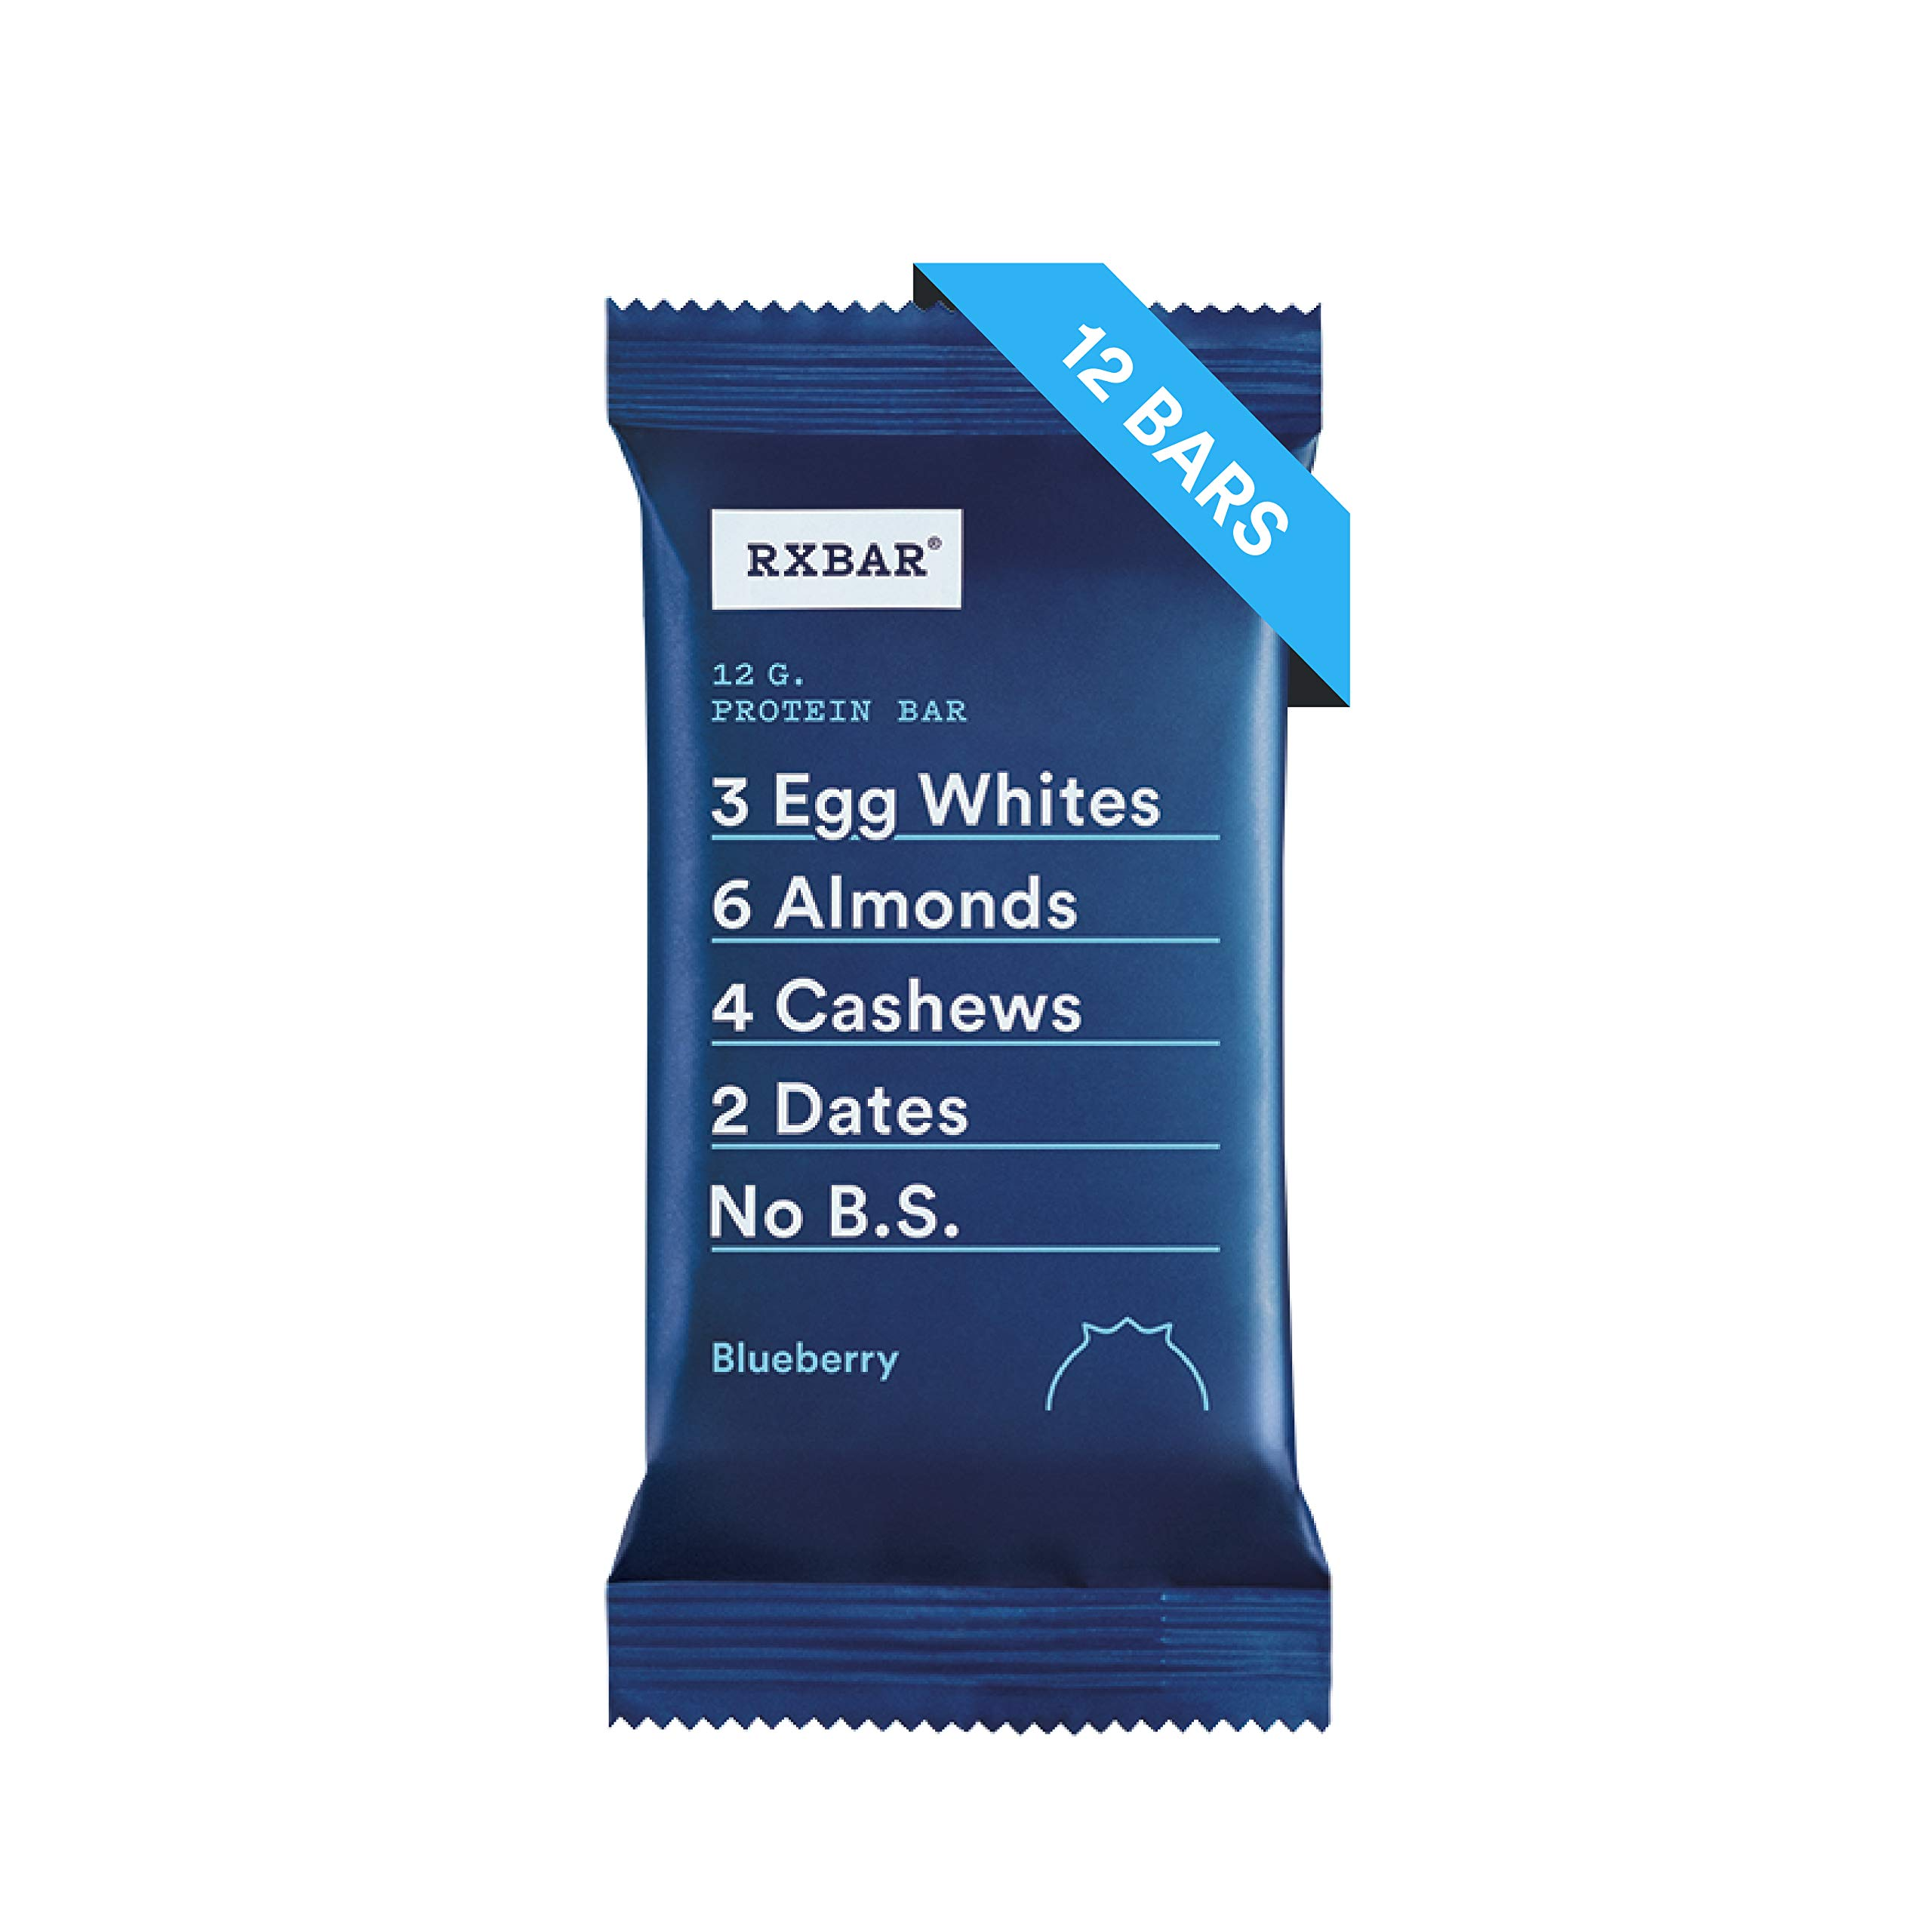 RXBAR, Blueberry, Protein Bar, 1.83 Ounce (Pack of 12) Breakfast Bar, High Protein Snack by RXBAR